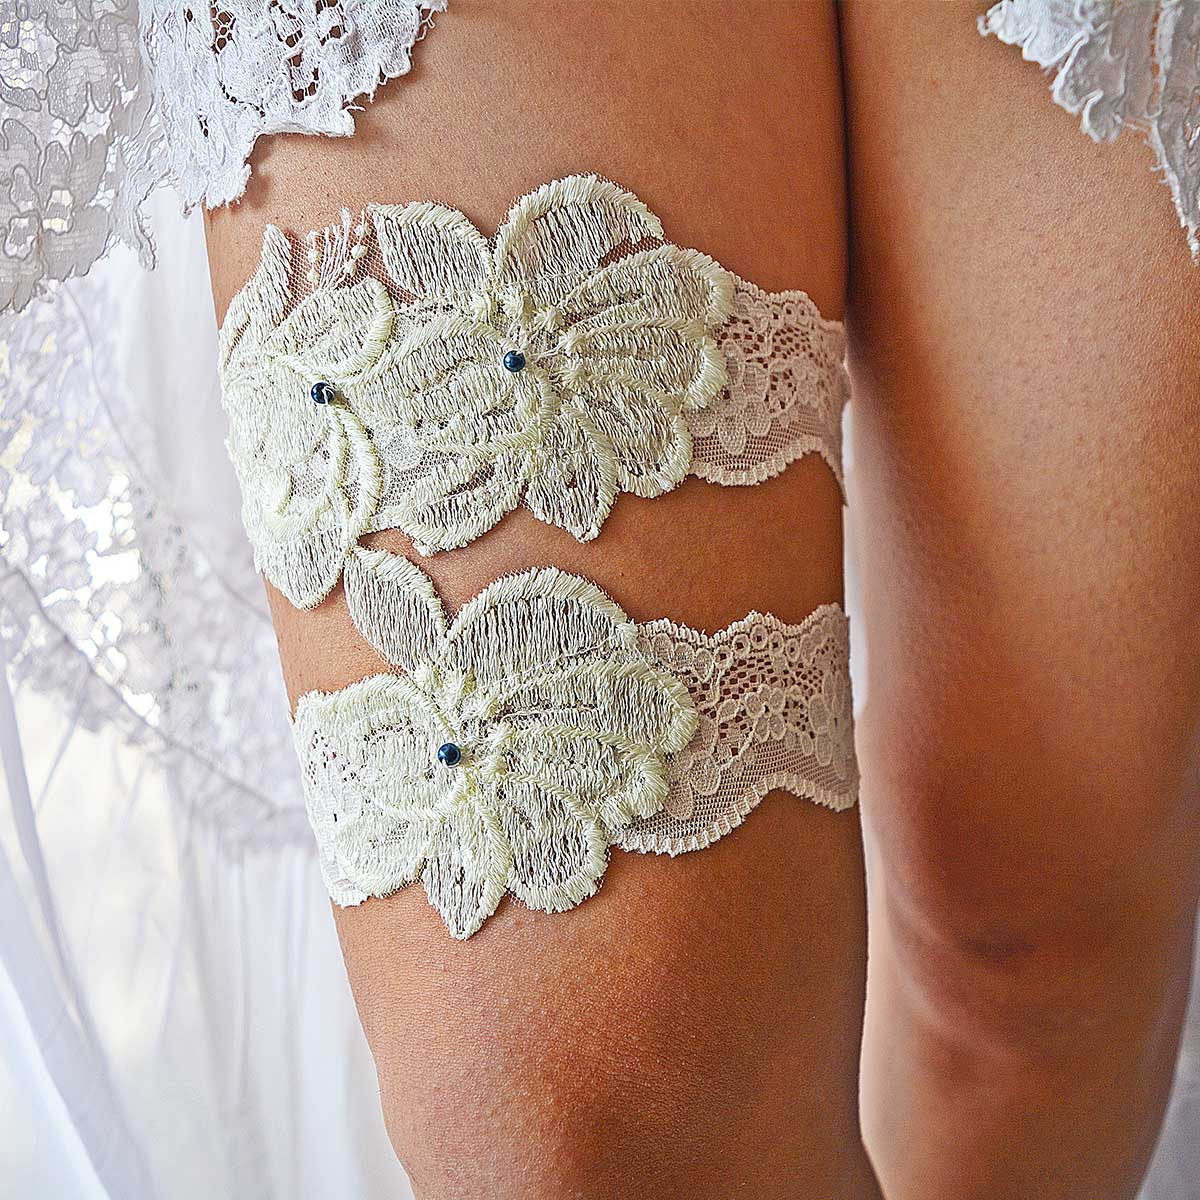 Bridal Garter With Ivory Applique Lace And Navy Blue Pearls